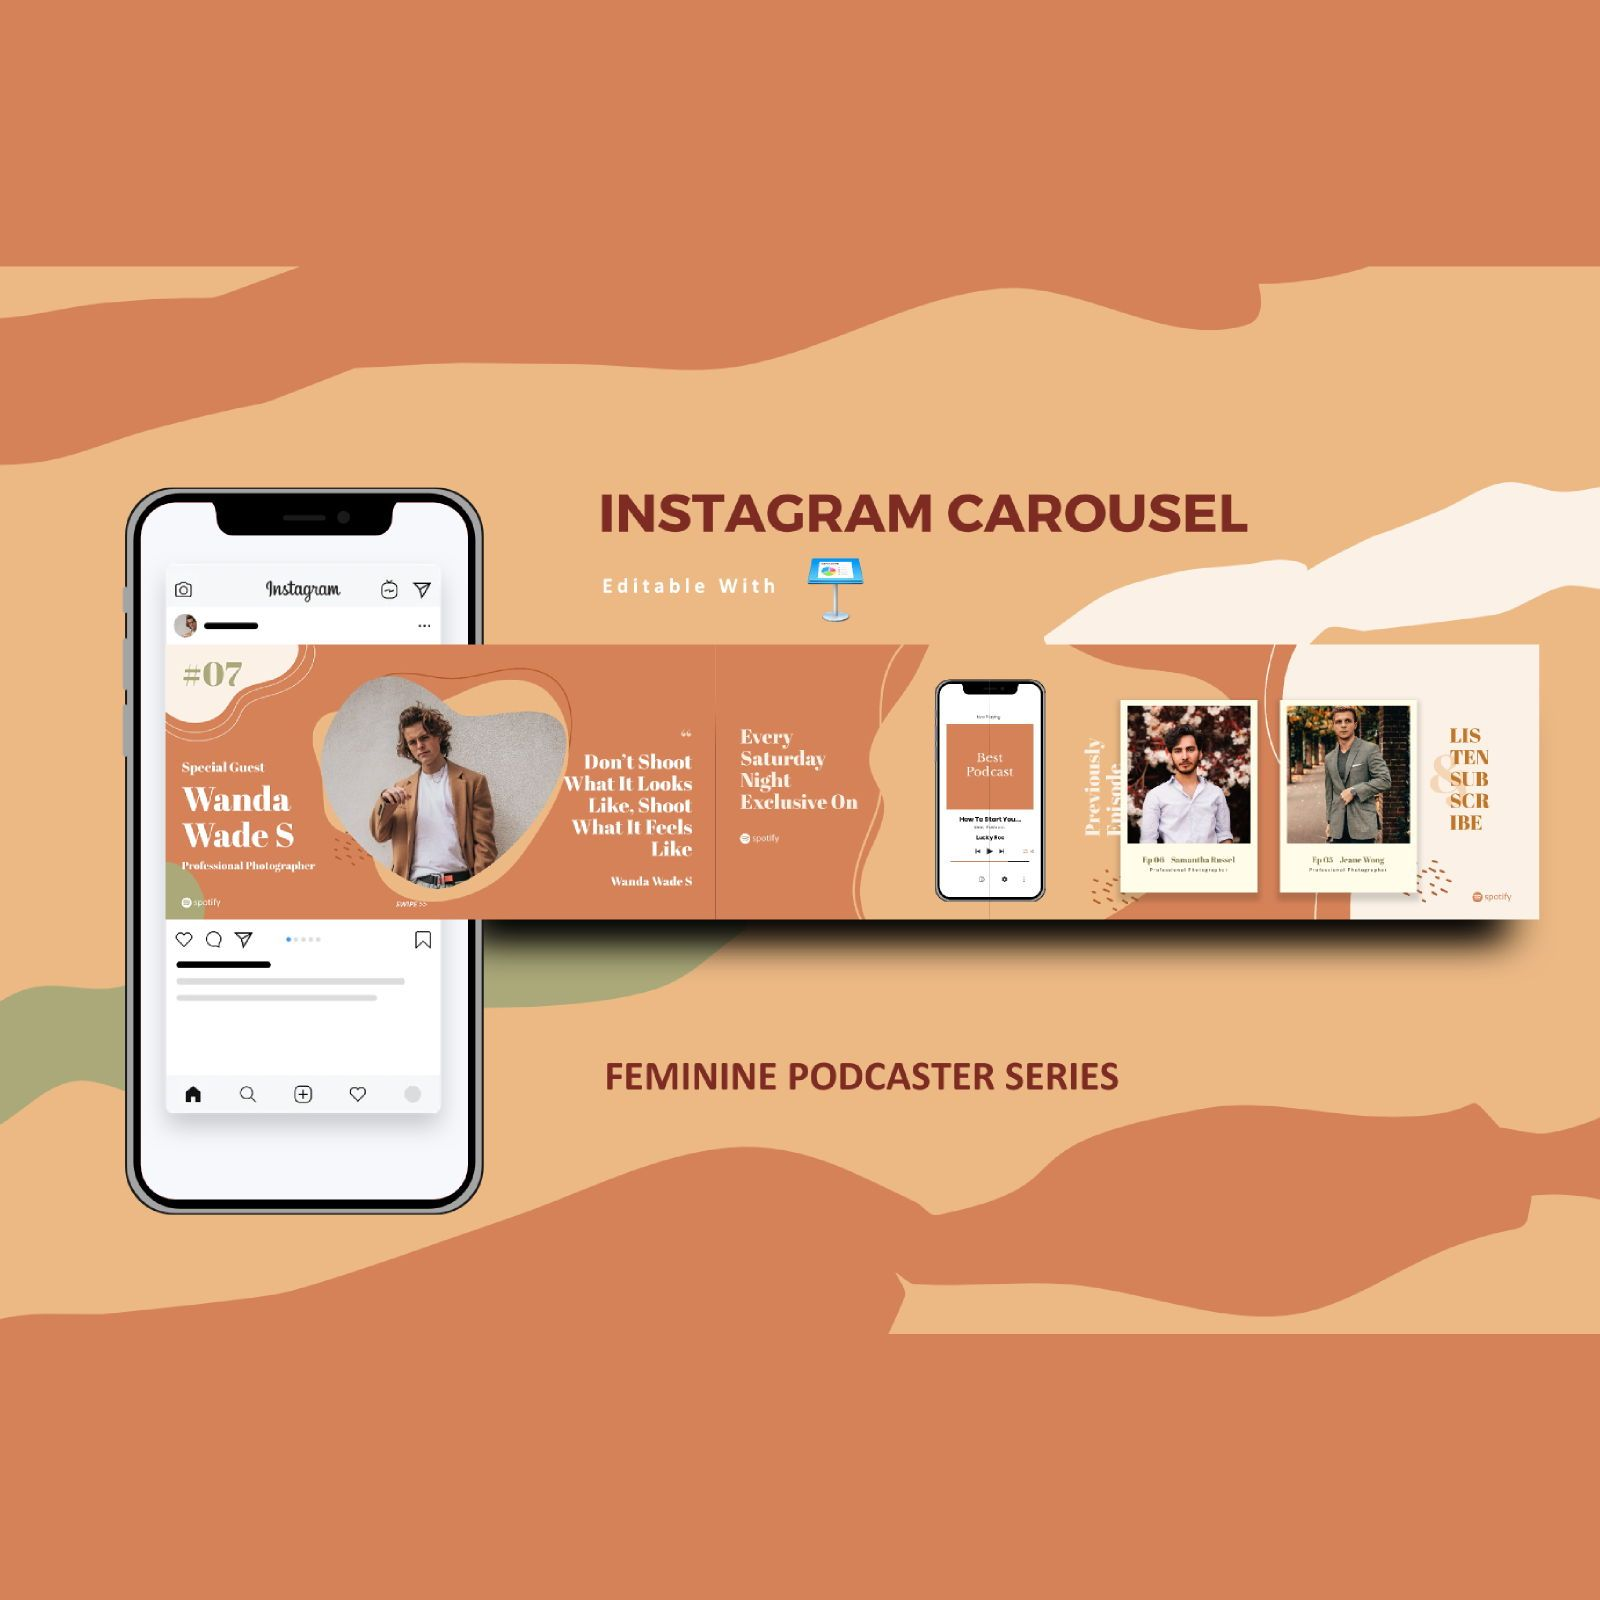 Feminine podcast interview instagram carousel keynote template, 08359, Business Models — PoweredTemplate.com